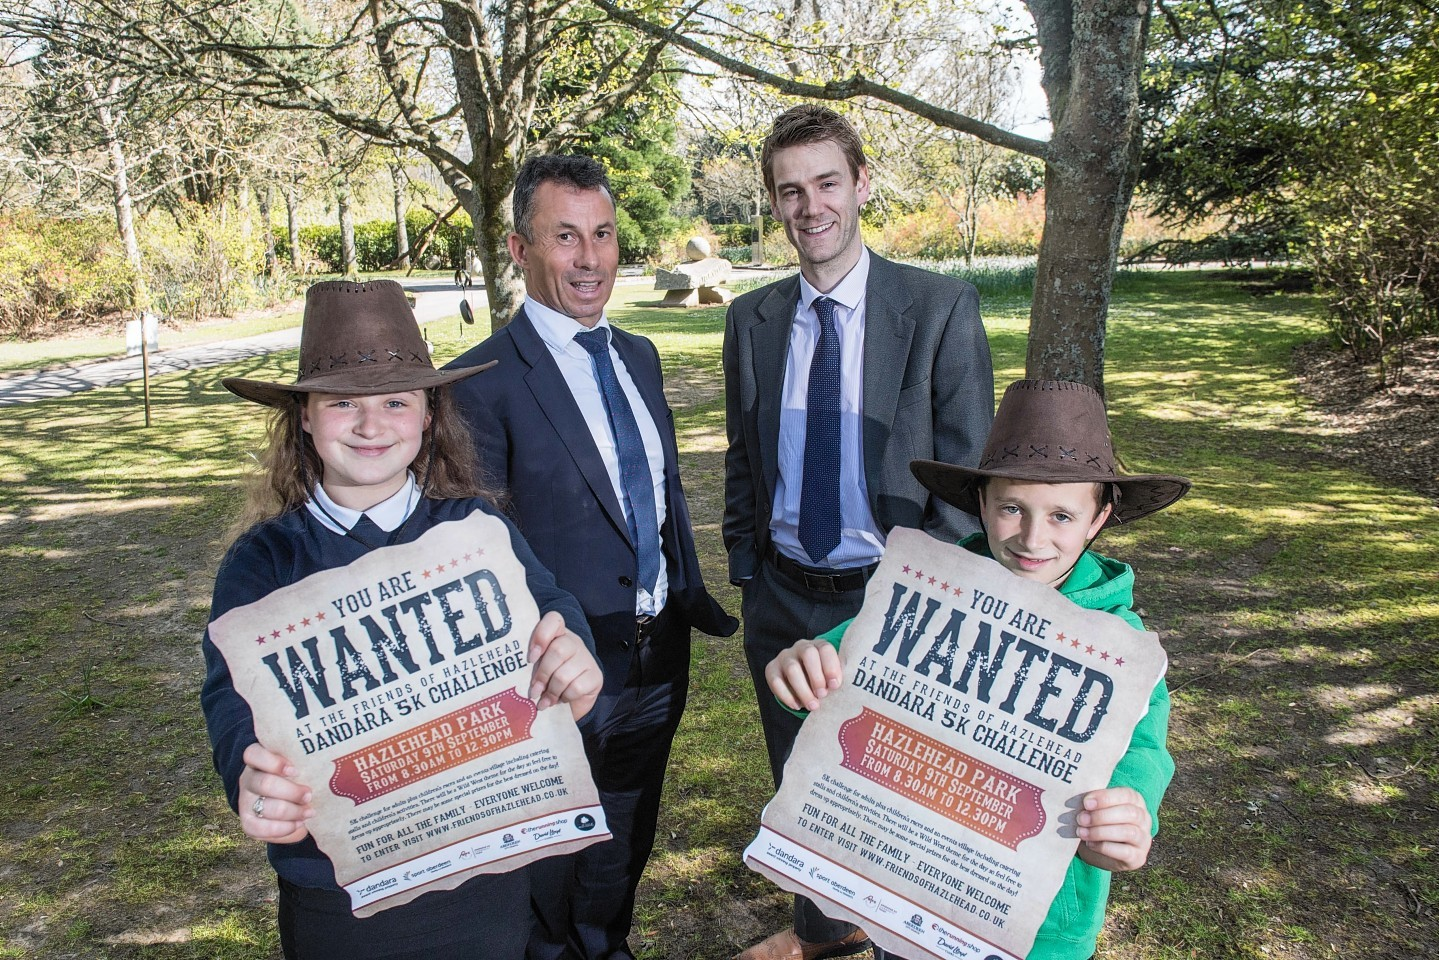 The popular Dandara 5k and family fun day returns to Hazlehead Park with a Wild West theme on Saturday, September 9, in aid of local charity group Friends of Hazlehead.